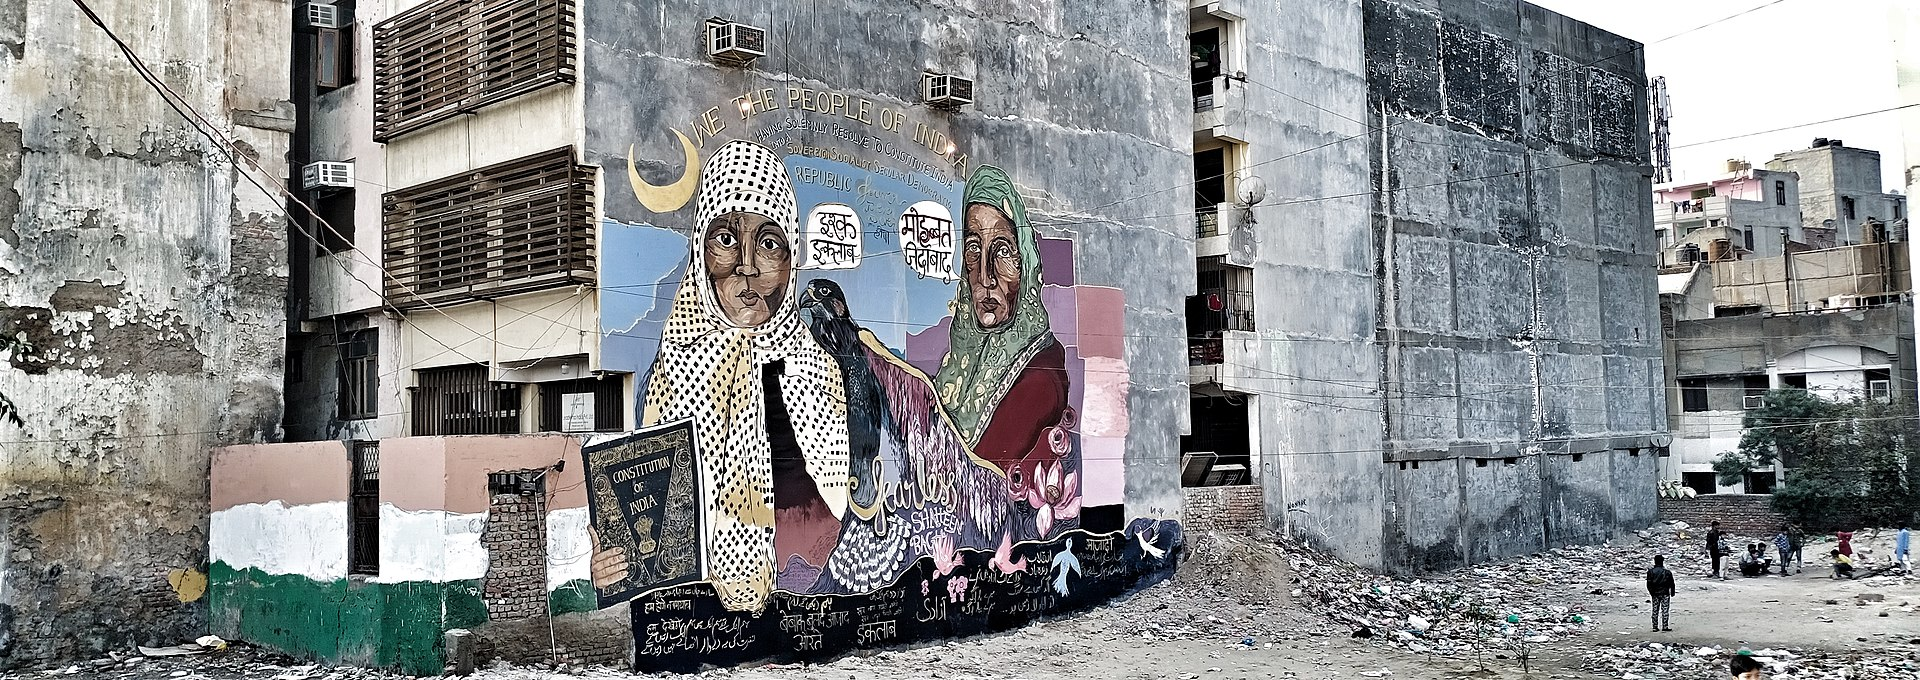 Mural featuring Muslim Women in Shaheen Bagh